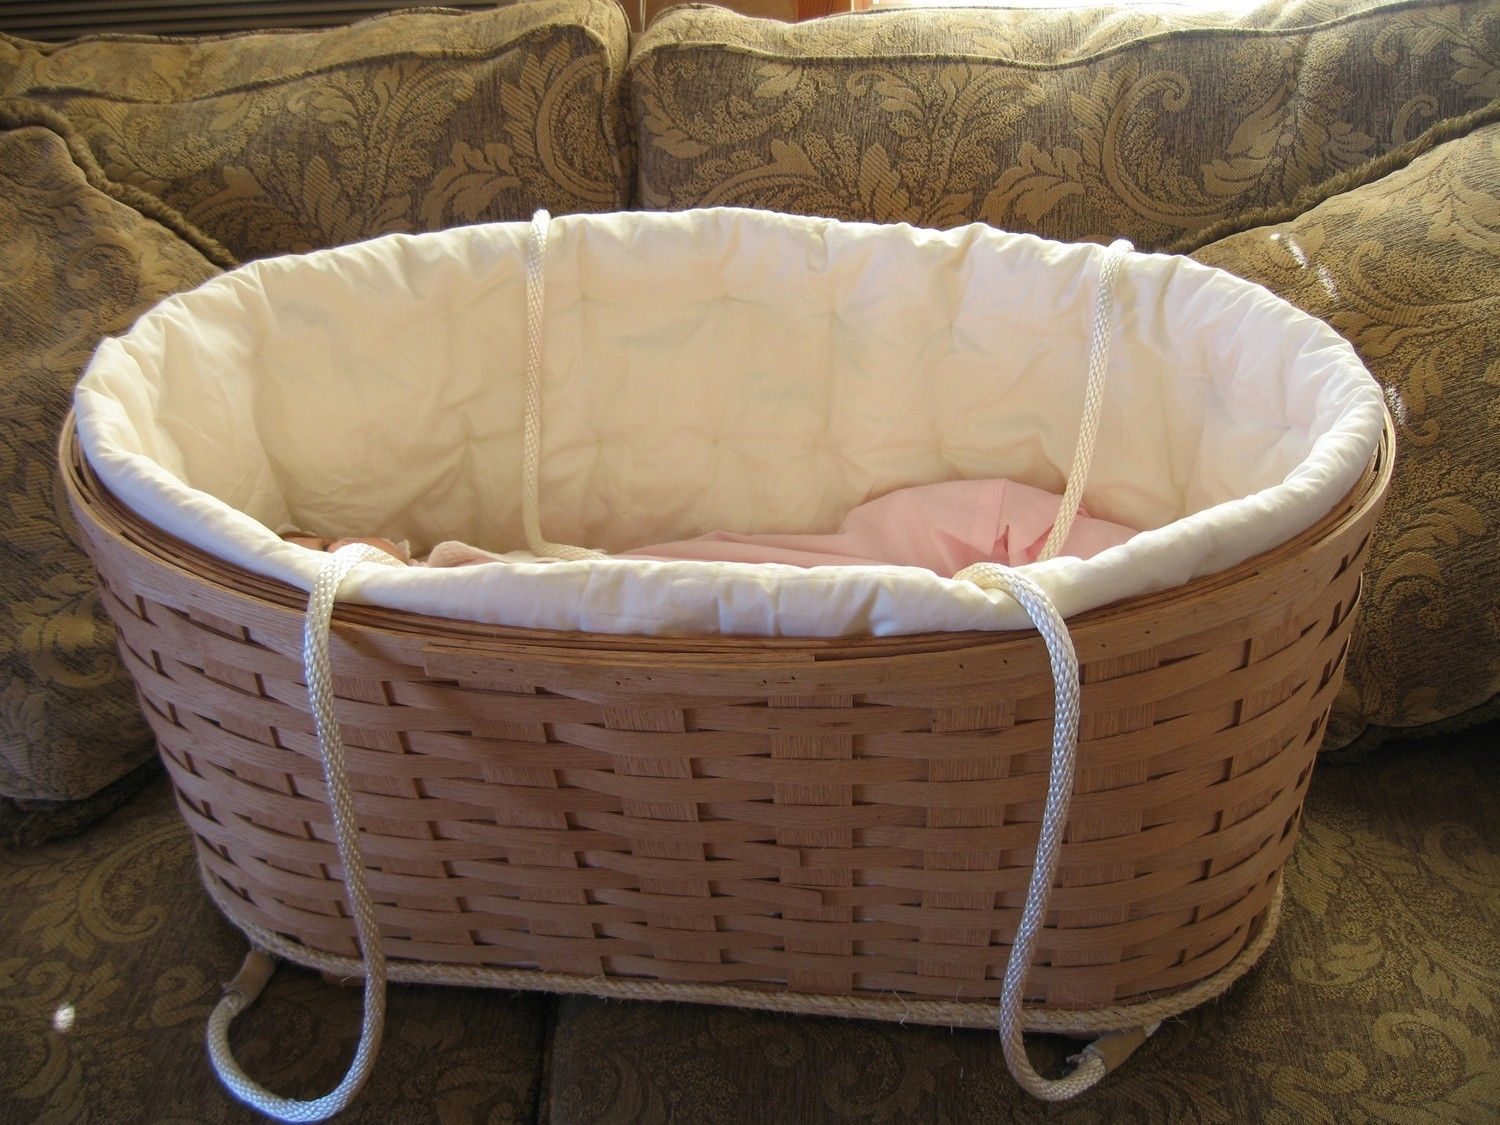 Baby Jogger City Select Kijiji City Select Bassinet Kijiji Snoo Bassinet Kijiji